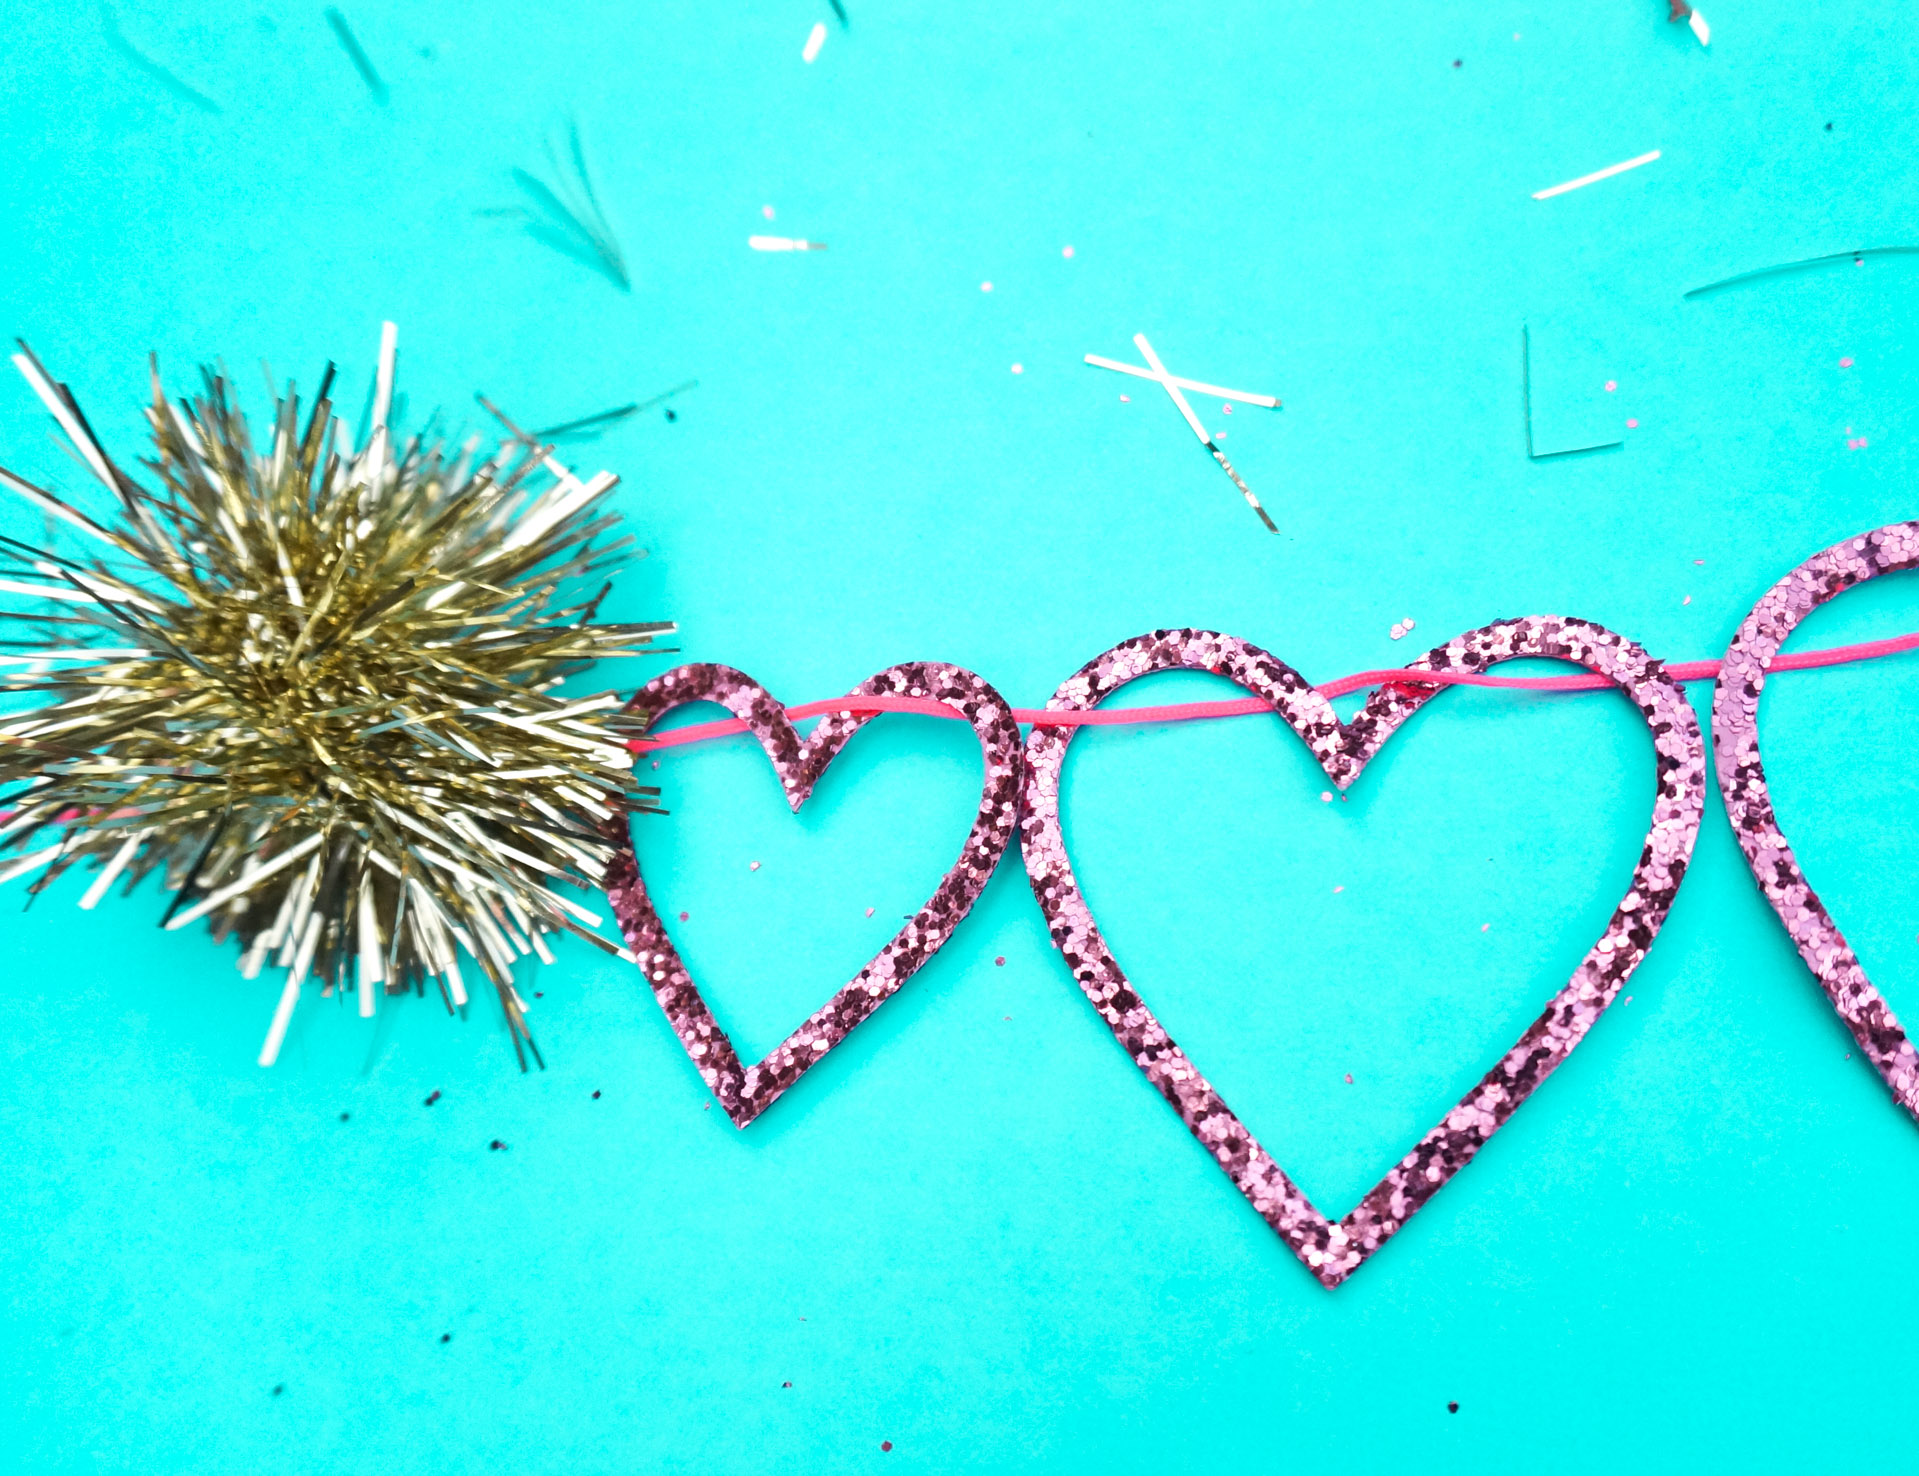 Sparkling heart and tinsel garland